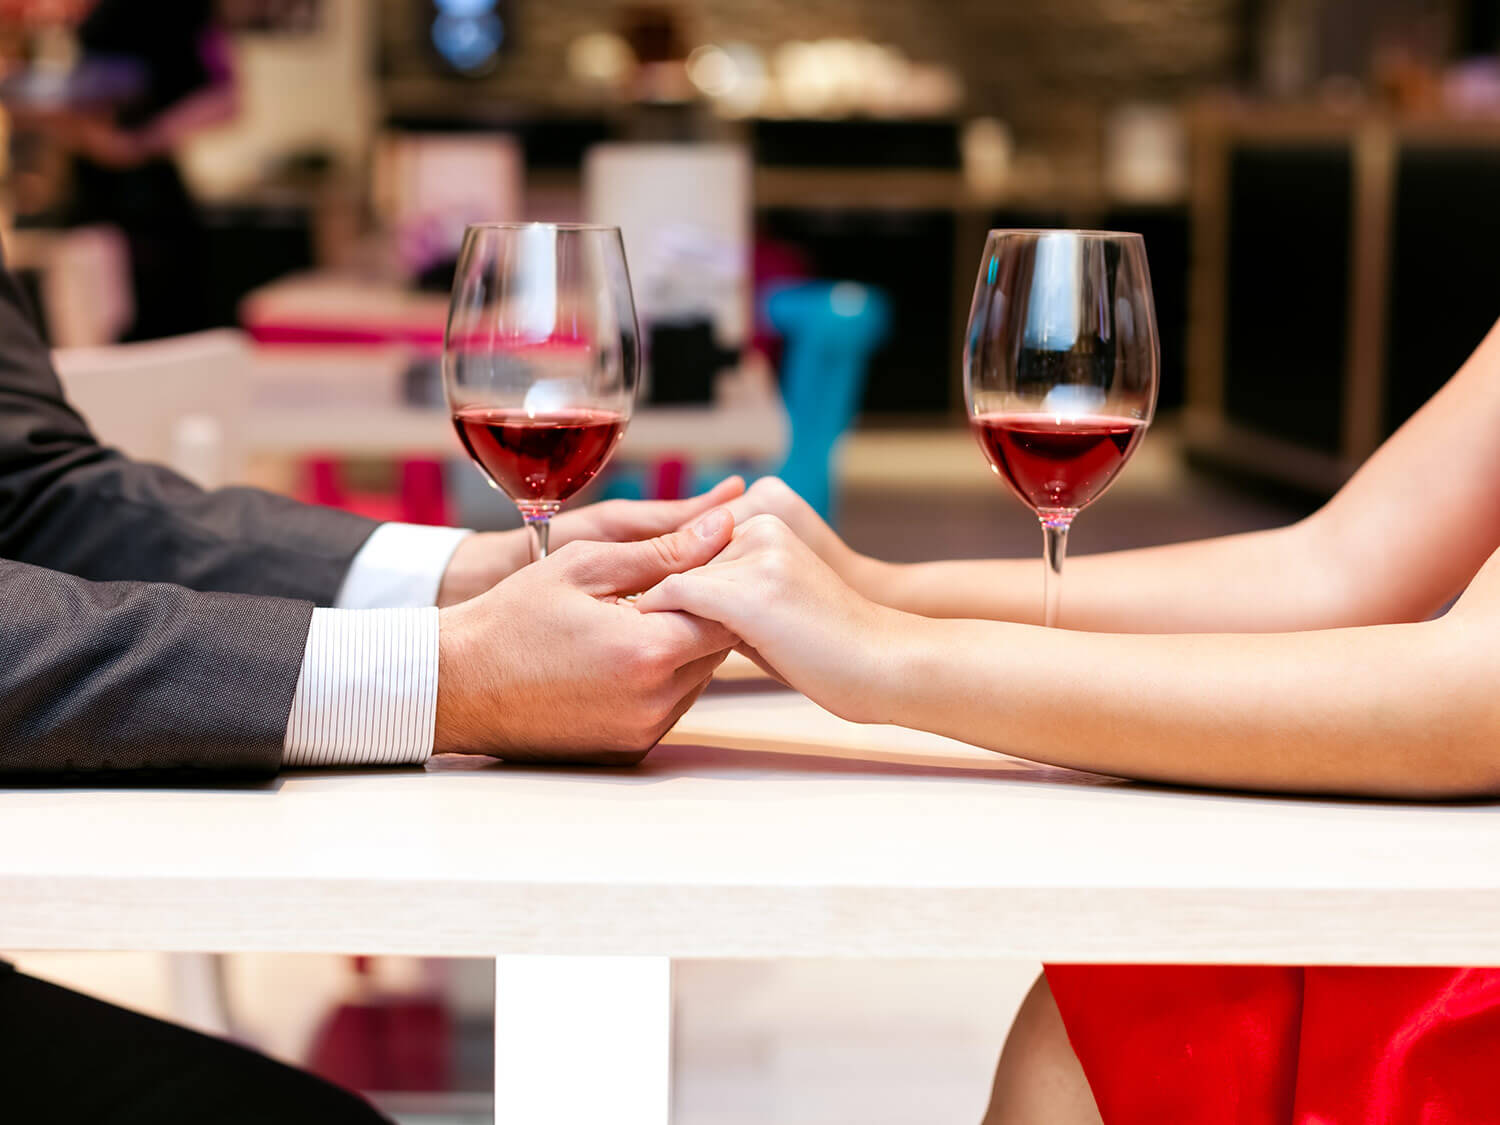 Get to know each other better over a bottle of wine